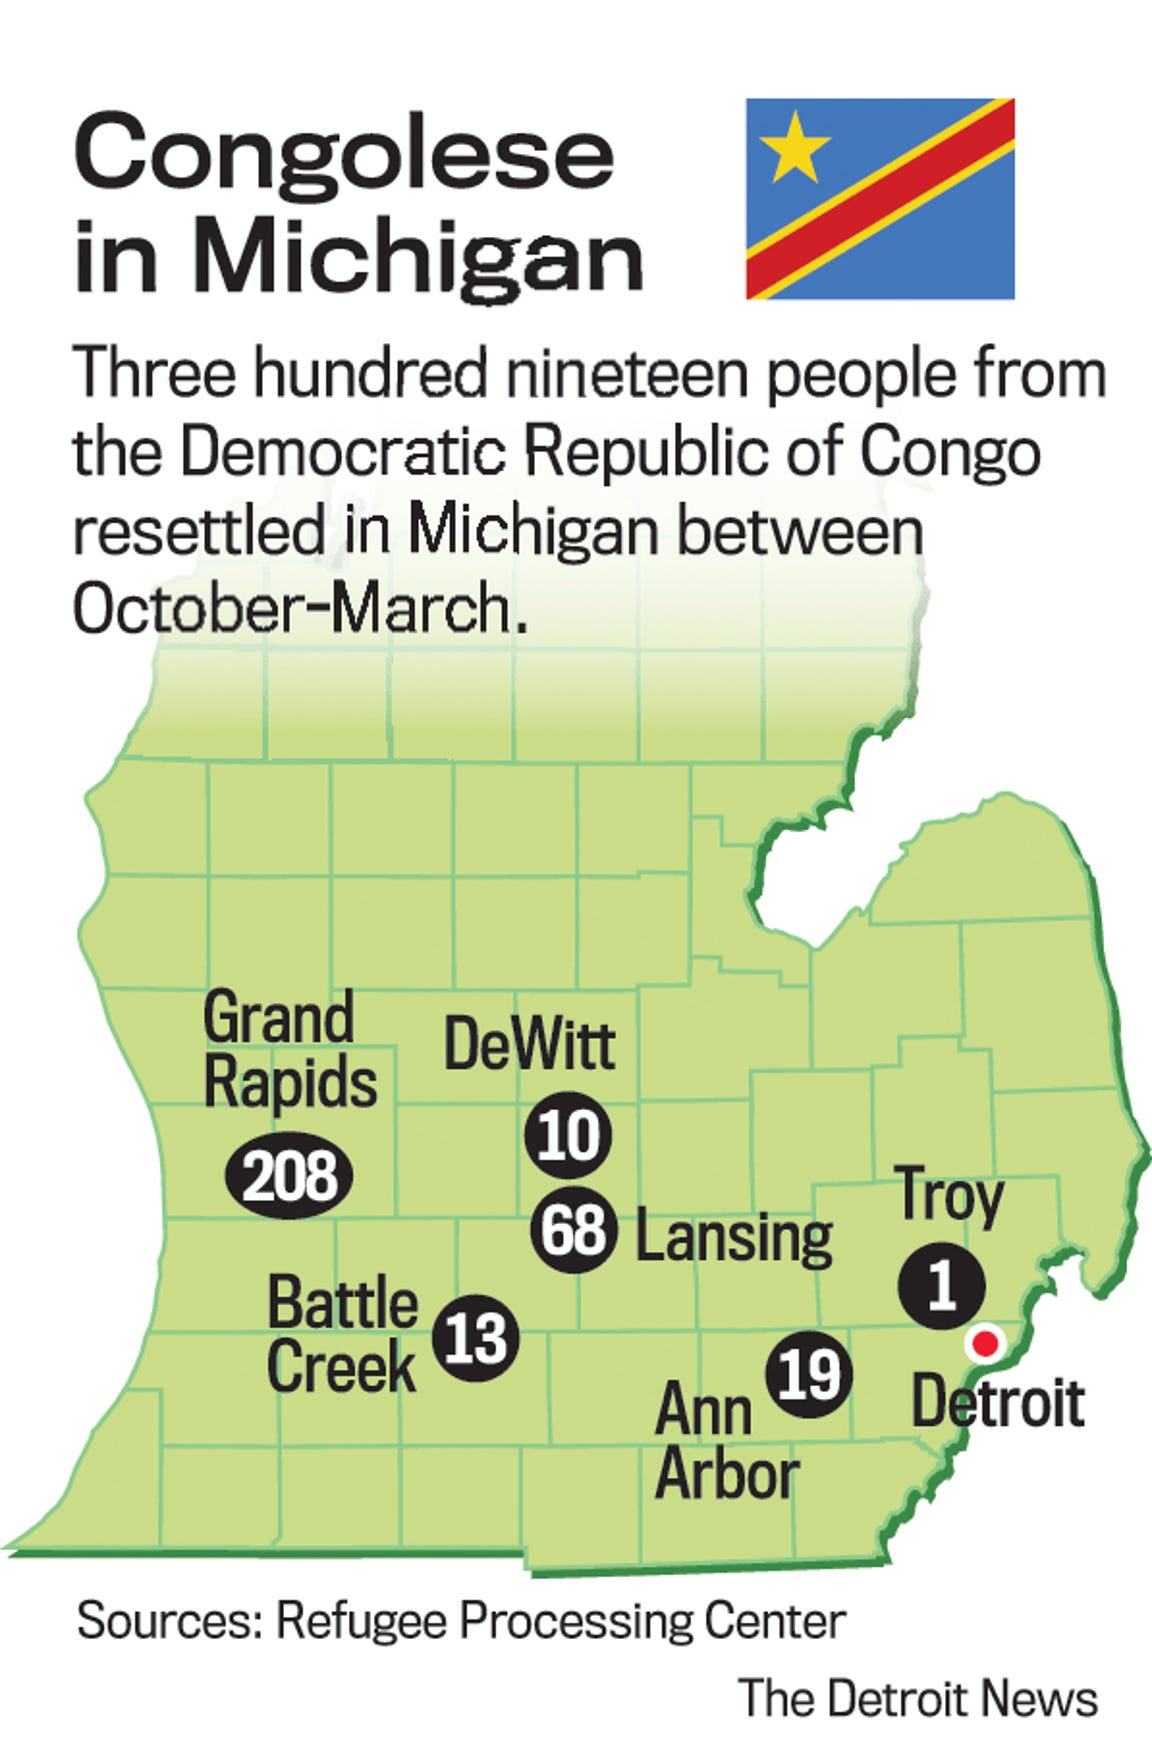 Between October and March, 319 Congolese refugees were resettled in Michigan.